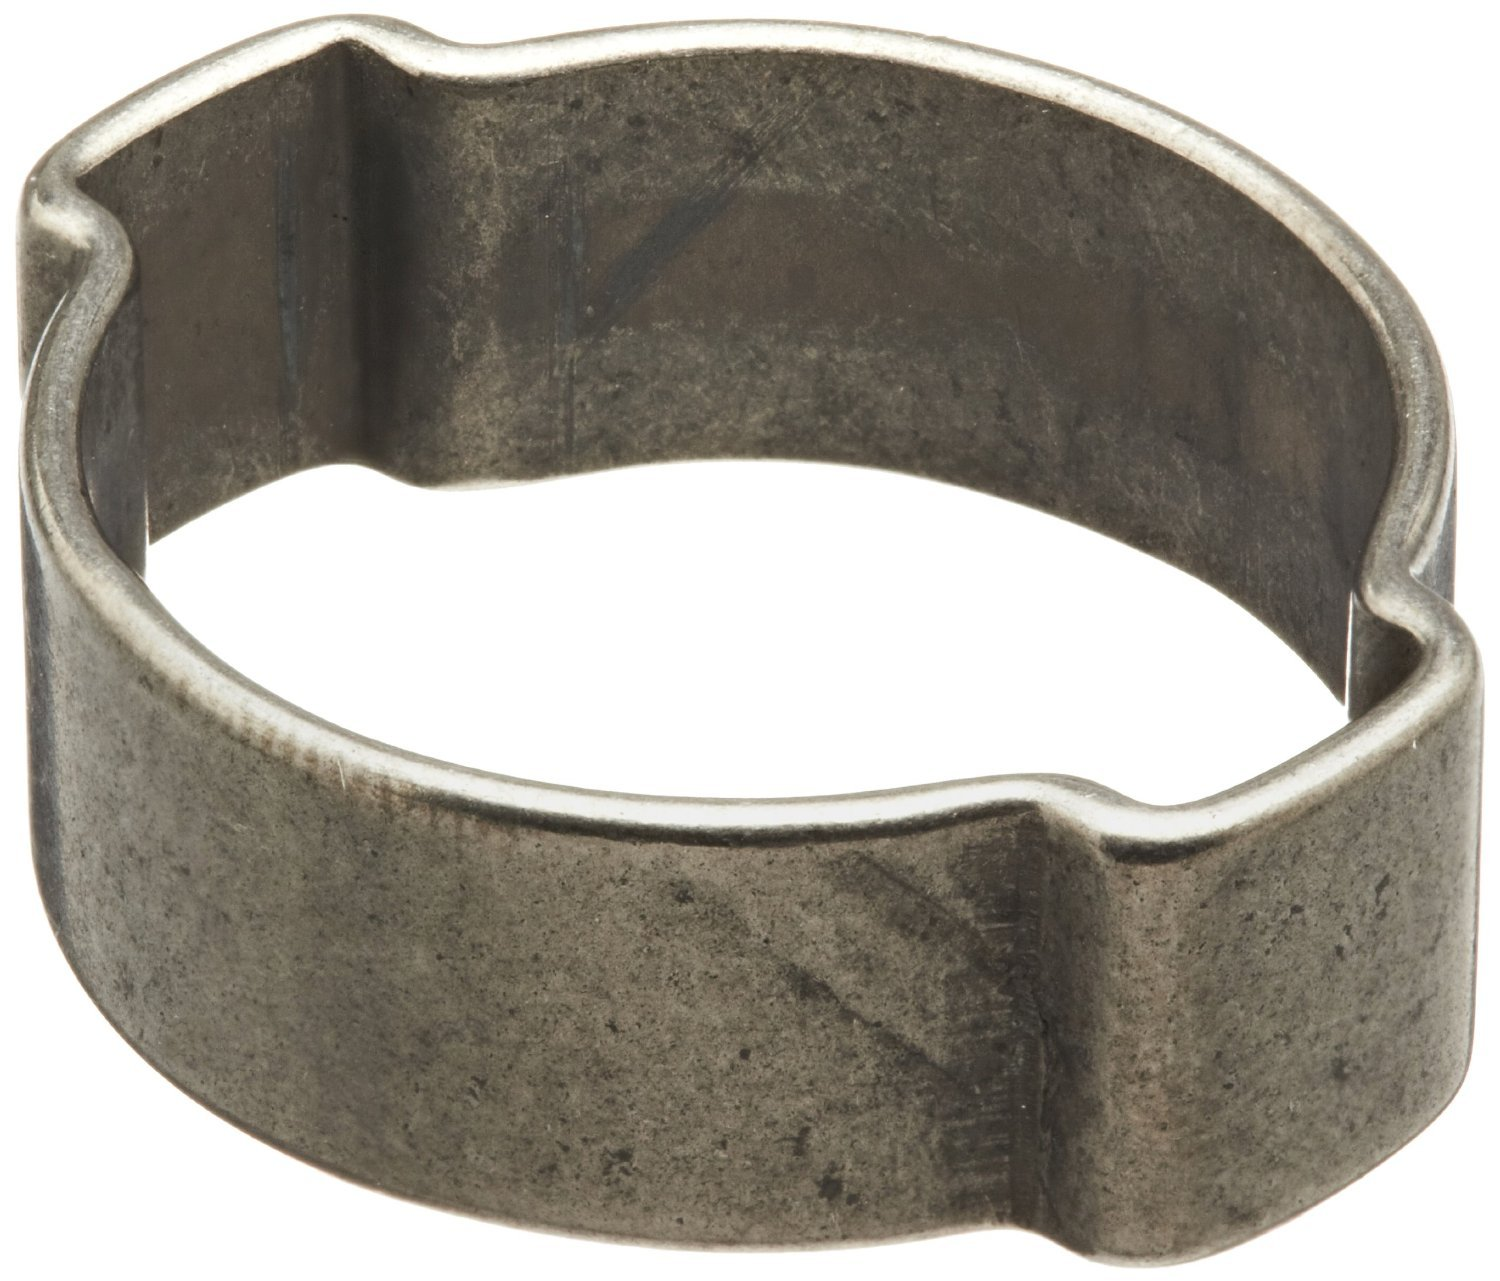 Oetiker 15100000 Stainless Steel Hose Clamp, Double Ear, Clamp ID Range 3.1 mm (Closed) - 4.1 mm (Open) (Pack of 400)